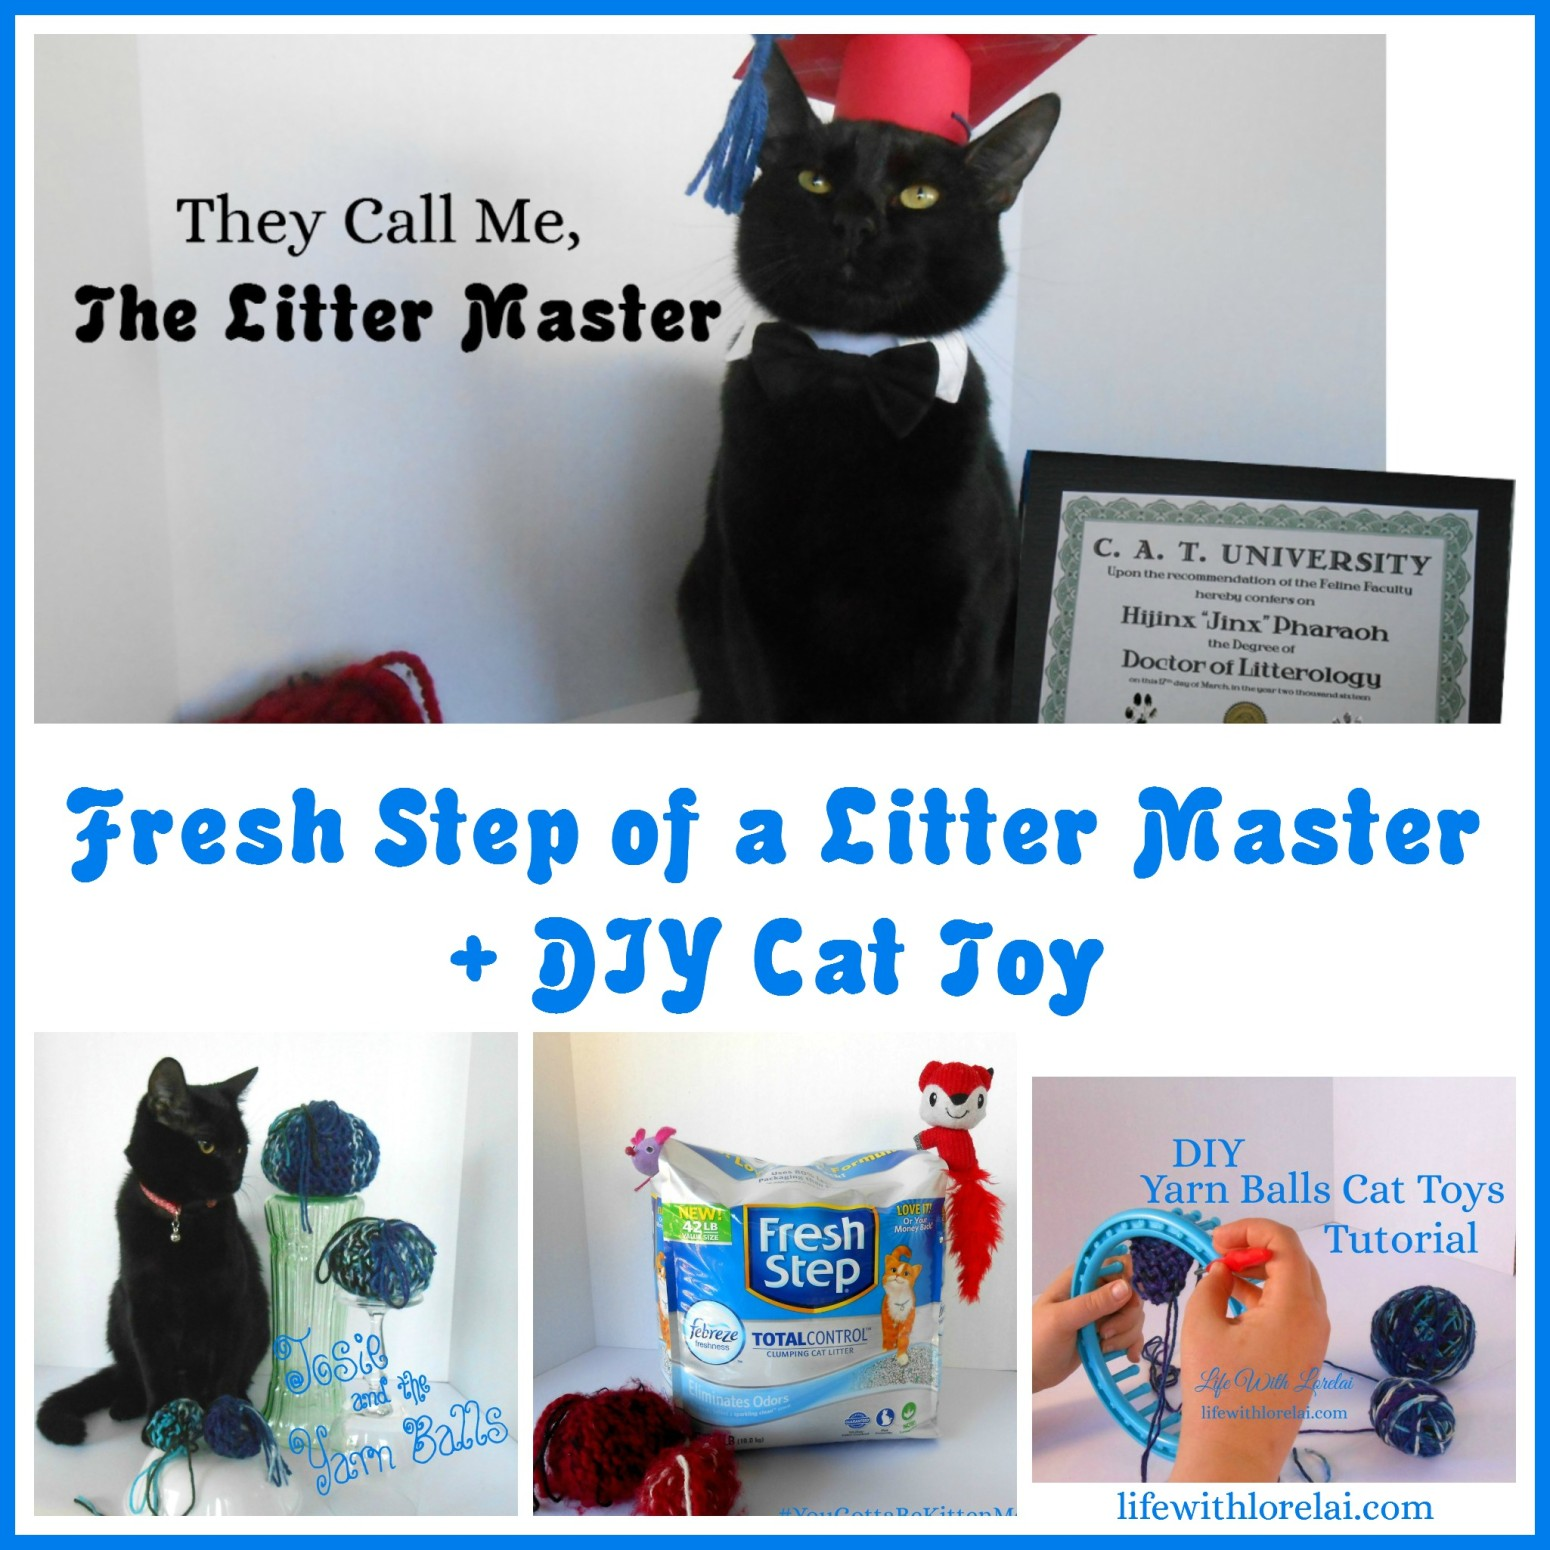 Fresh-Step-Litter-Master-DIY-Cat-Toy-Life With Lorelai